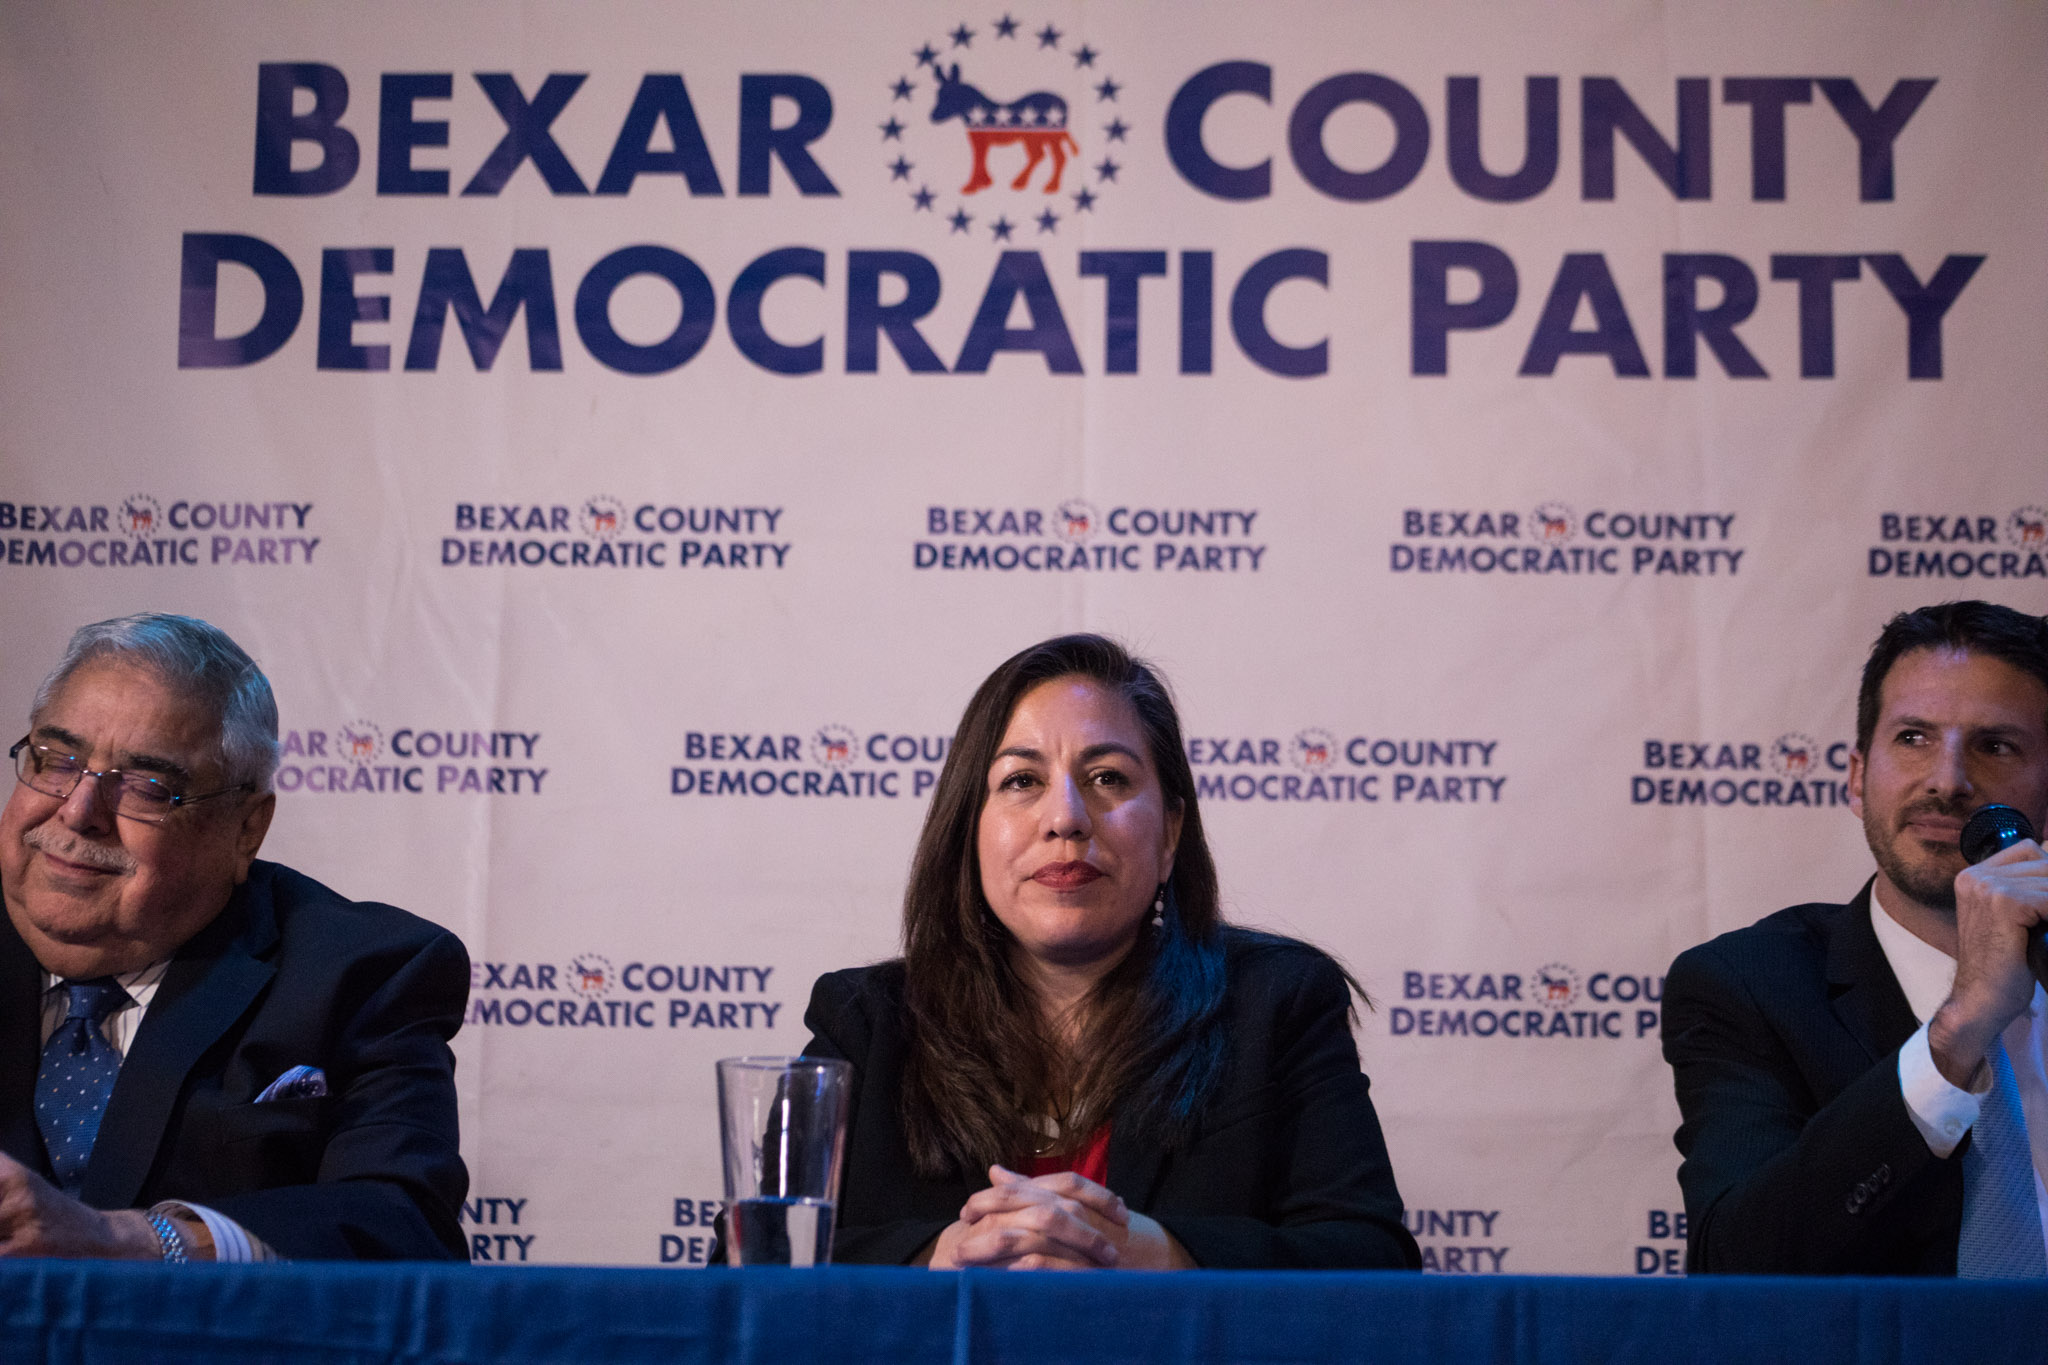 Democratic primary candidates (from left) Bexar County Commissioner Paul Elizondo (Pct. 2), Queta Rodriguez, and Mario Bravo debate Tuesday night on how they would govern Bexar County's second precinct.